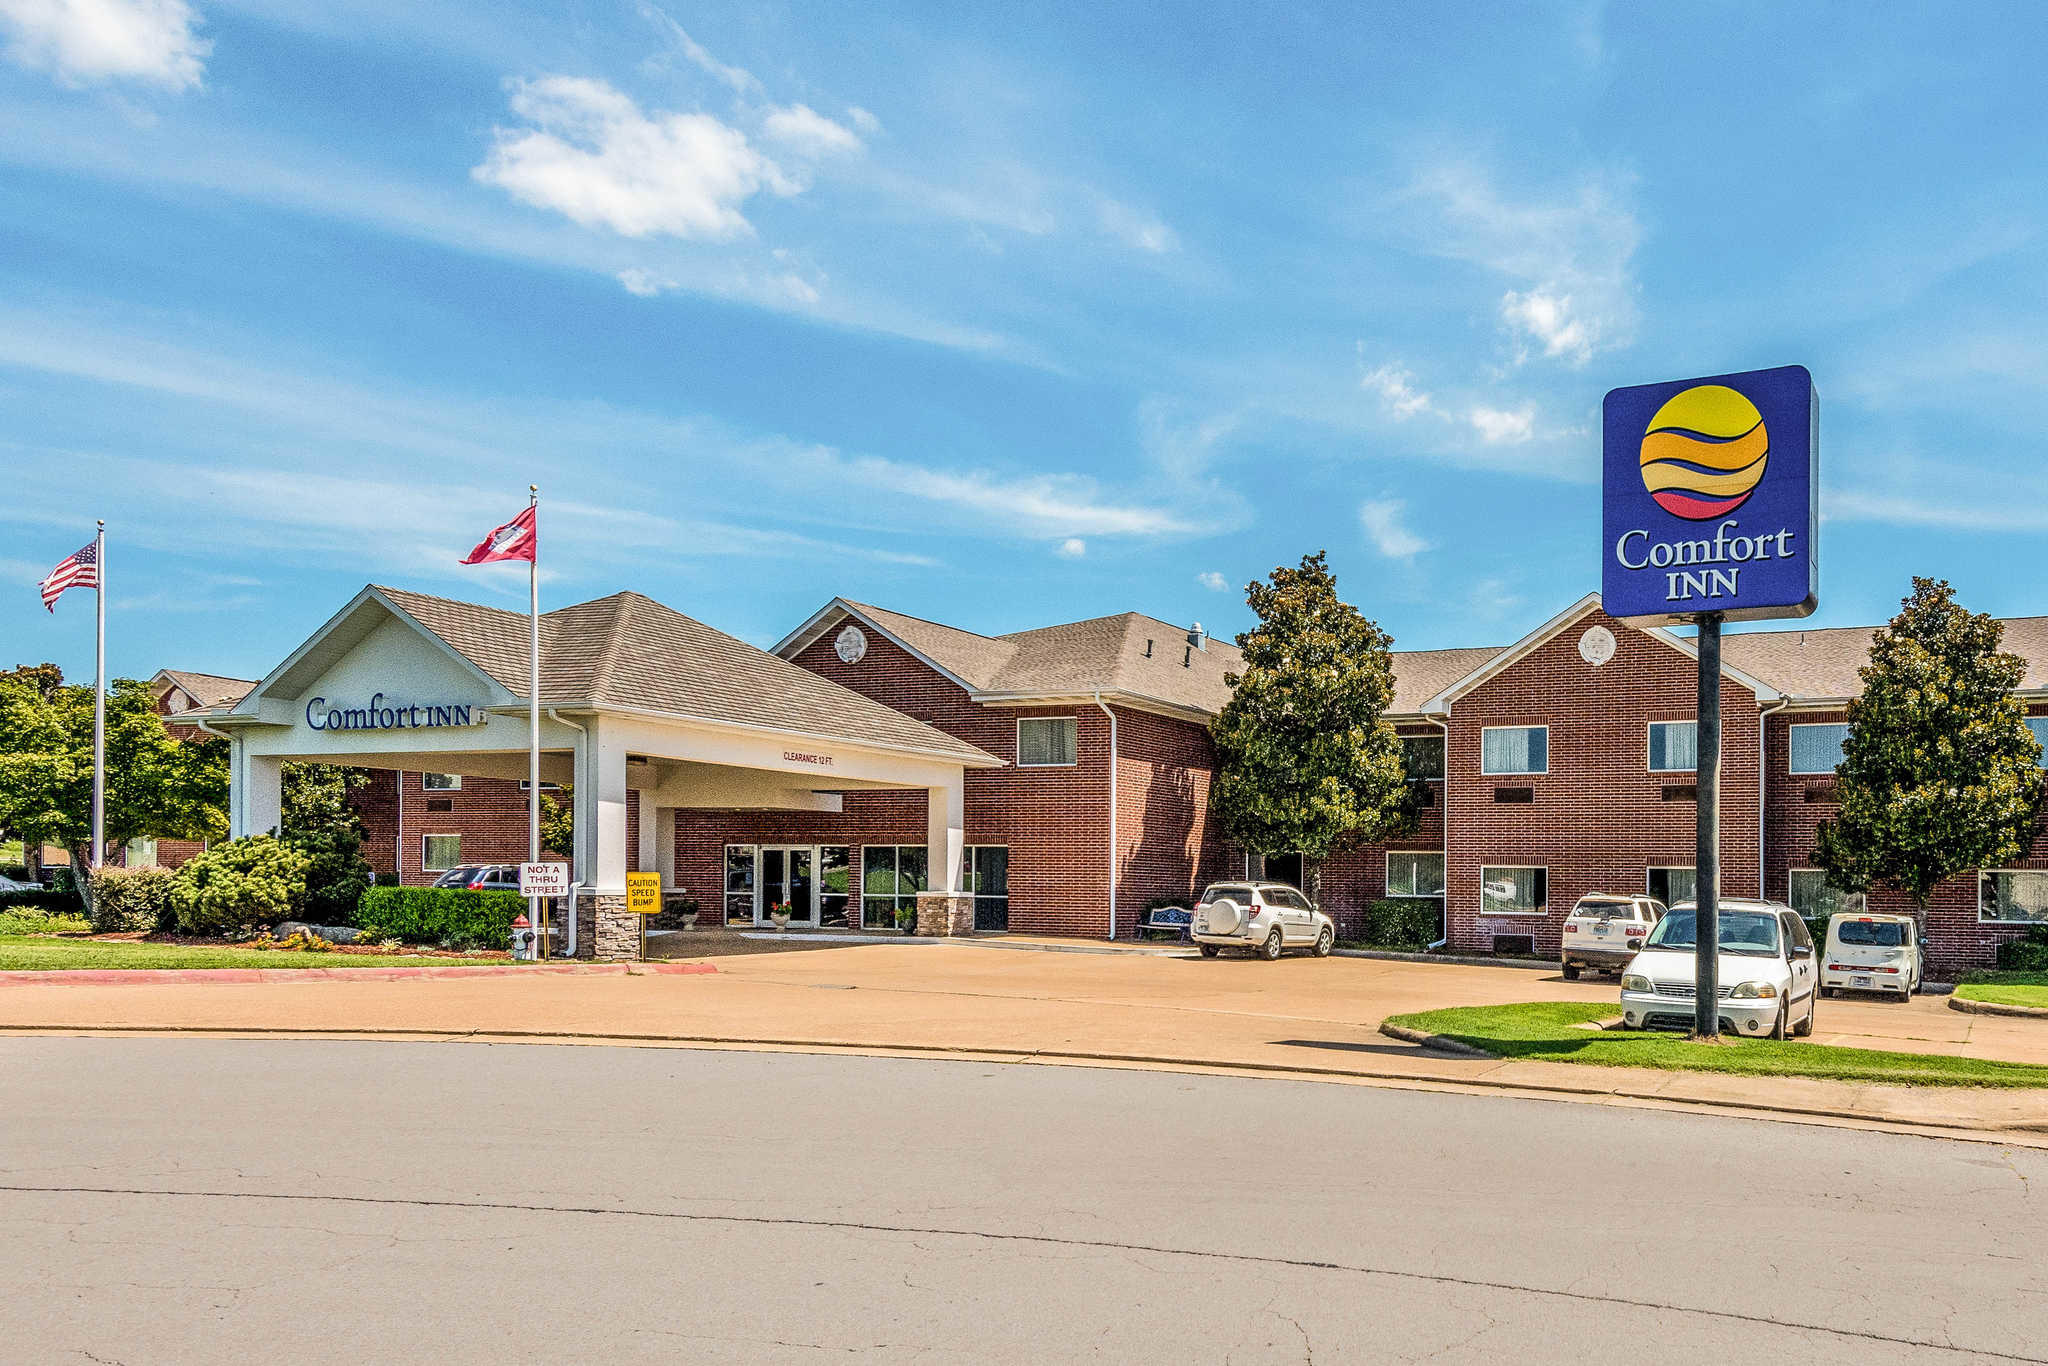 Comfort inn mountain home arkansas ar for Comfort house